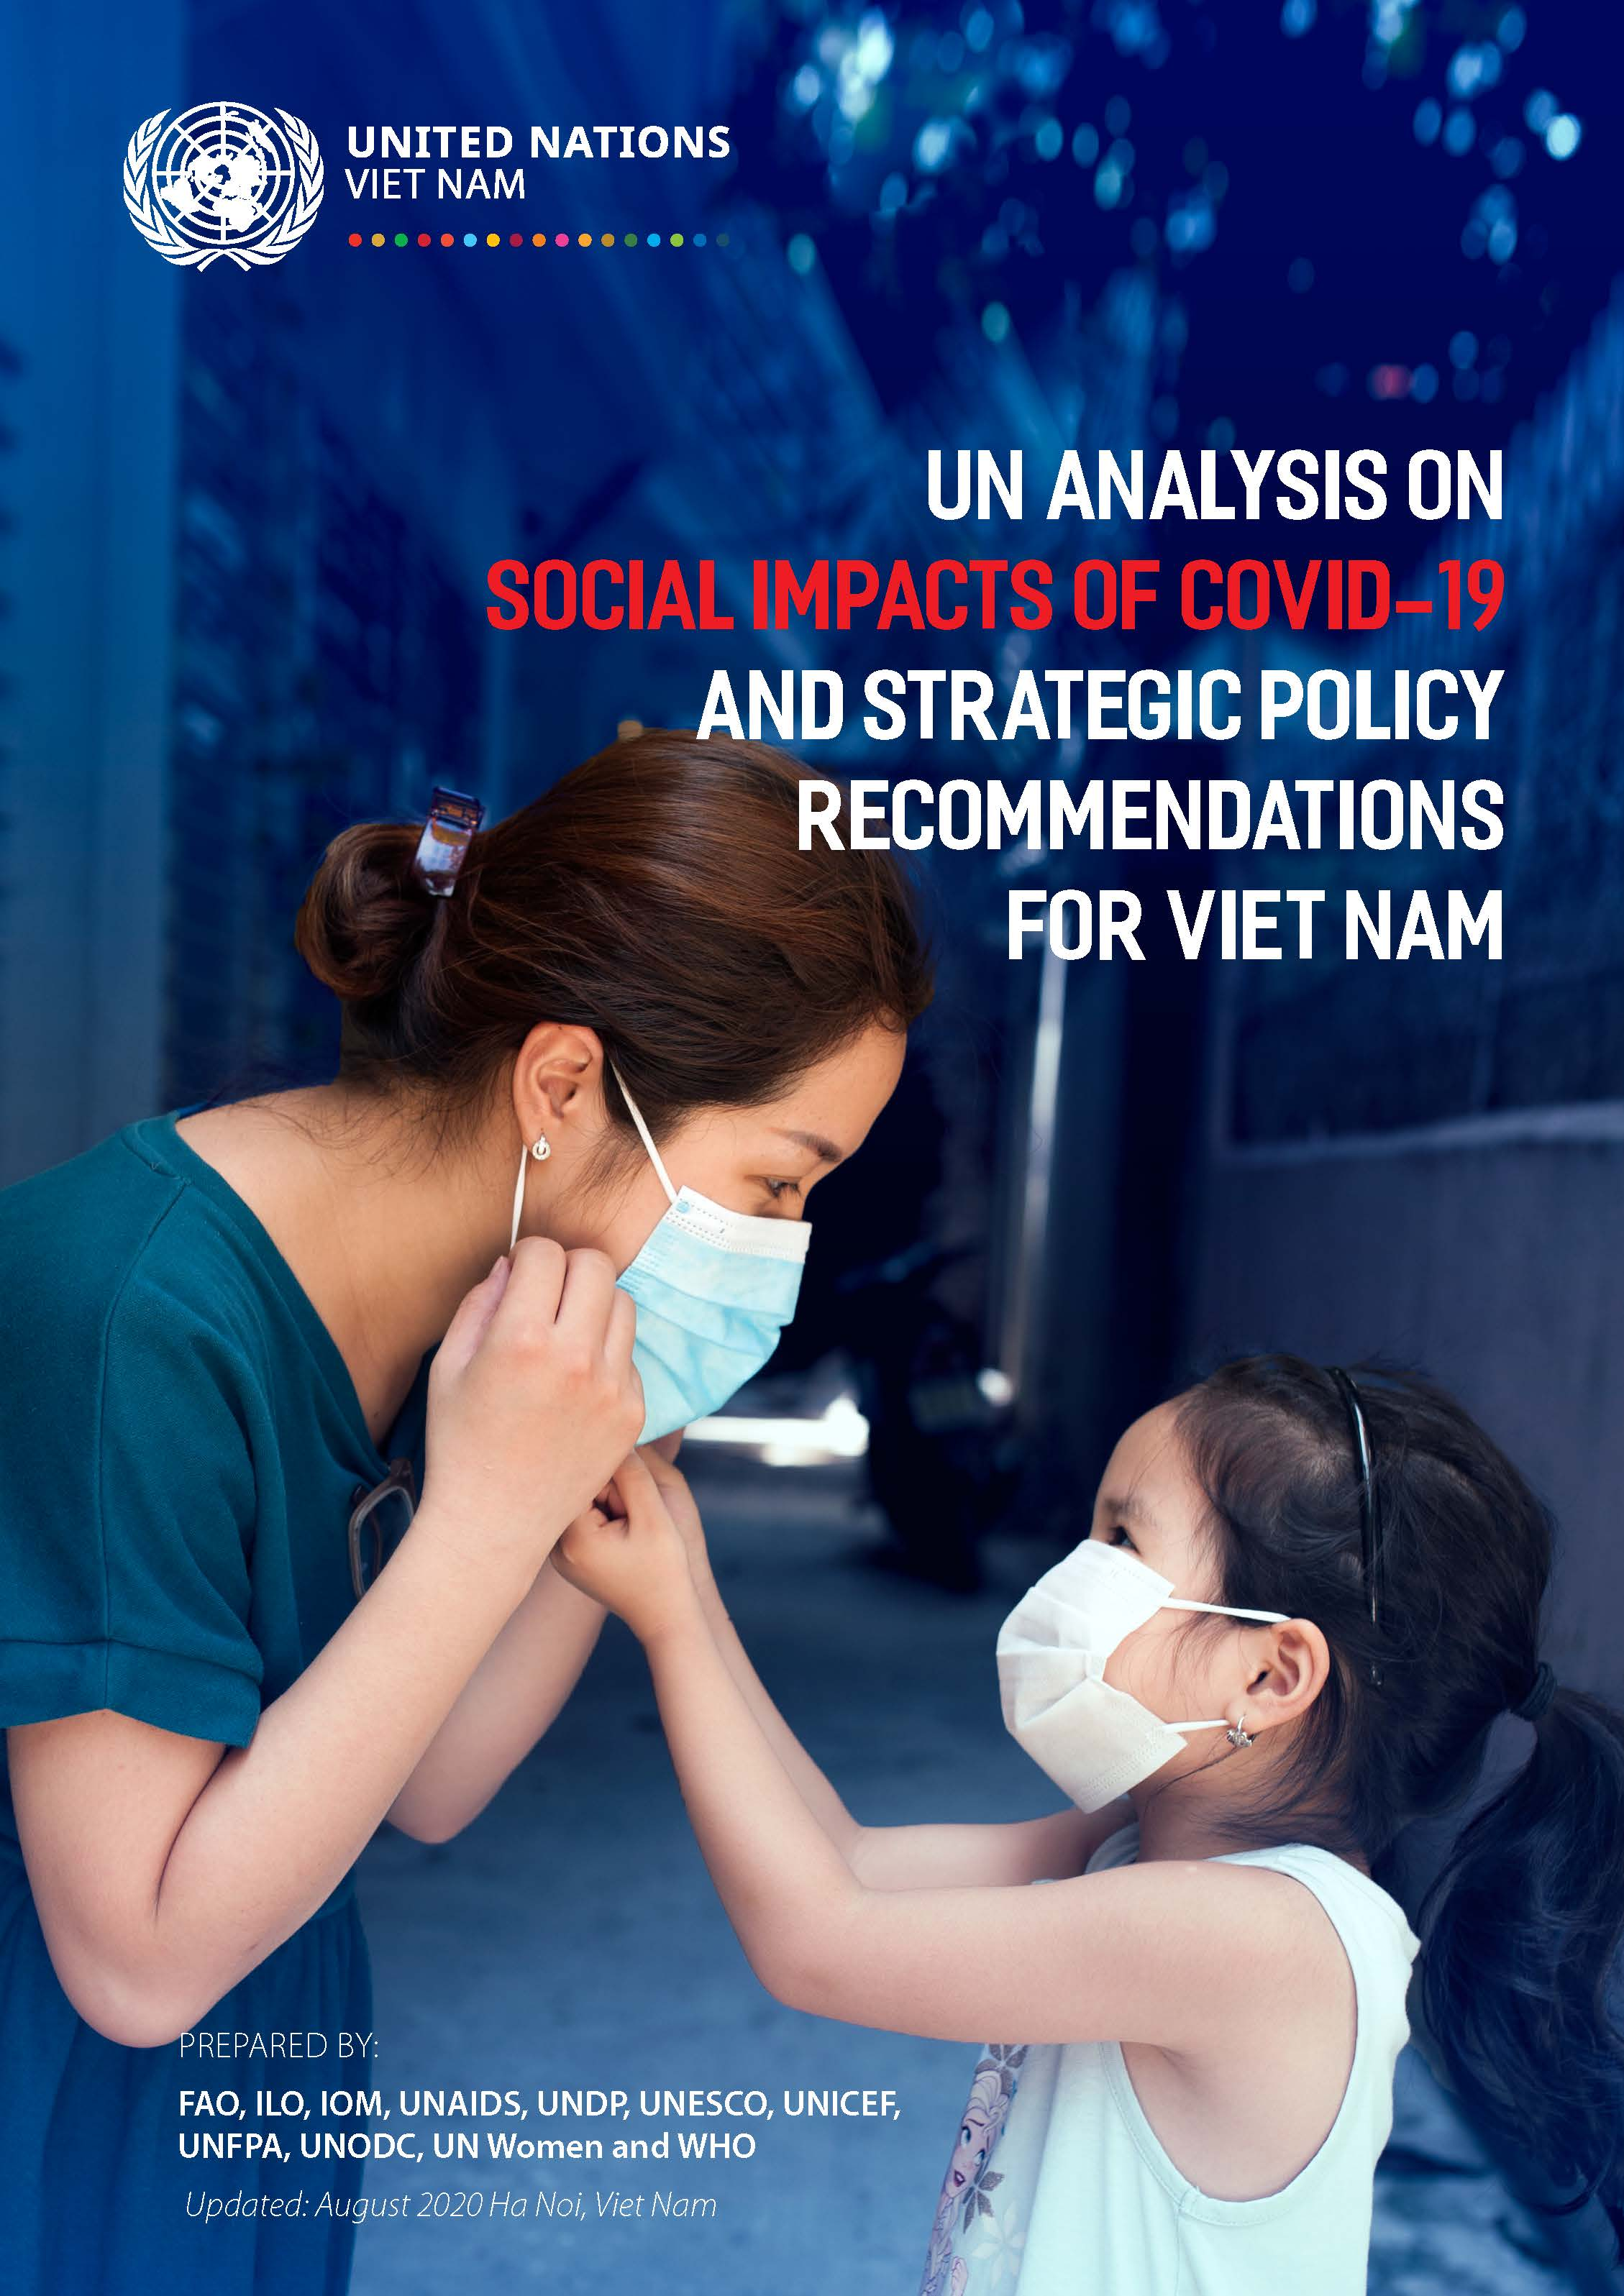 UN Analysis on Social Impacts of COVID-19 and Strategic Policy Recommendations for Viet Nam